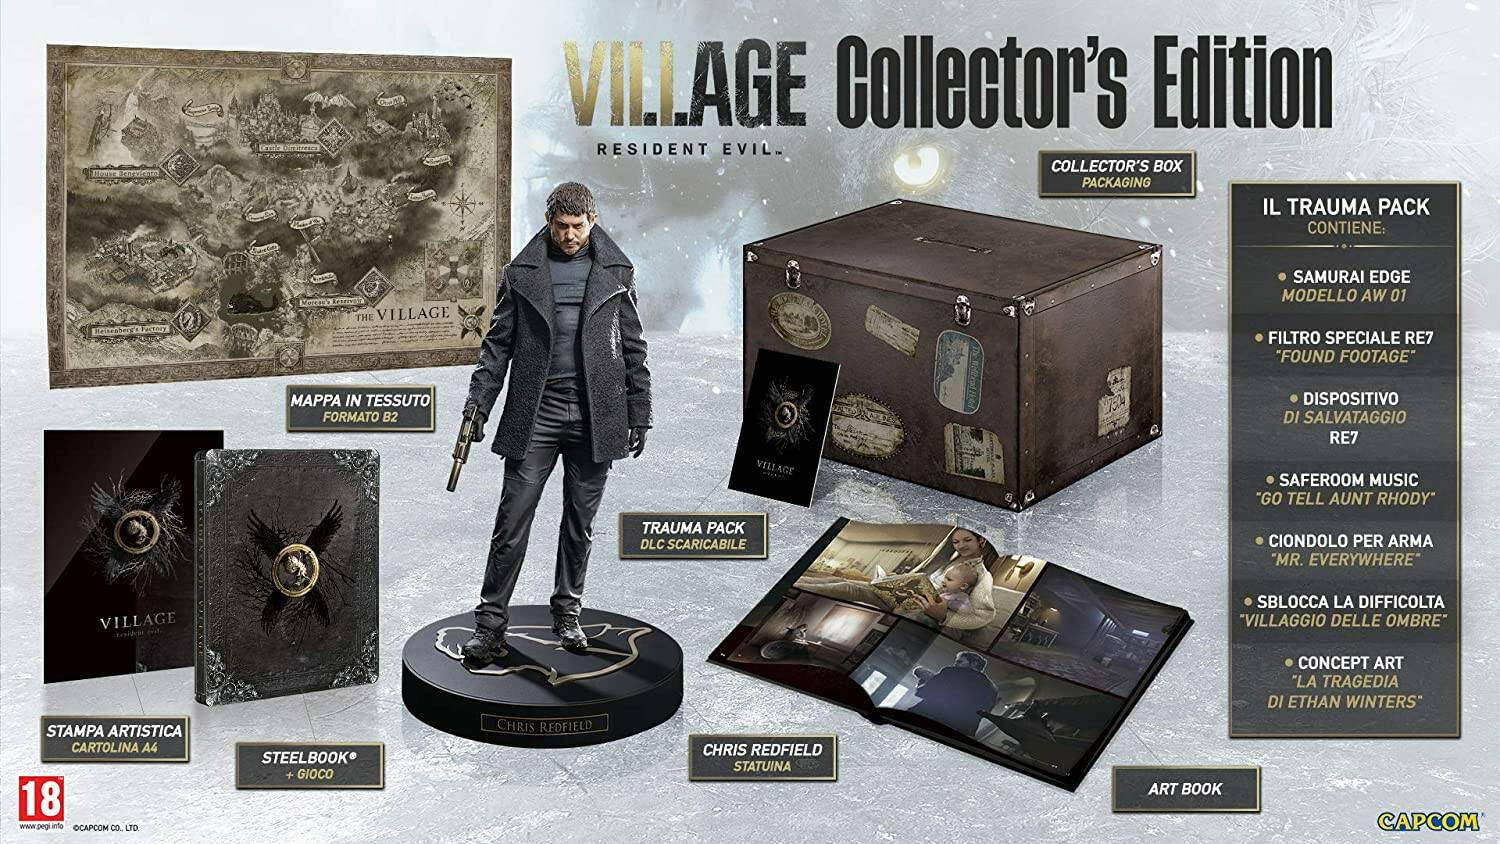 Resident Evil Village - Collector's Edition - Collector's